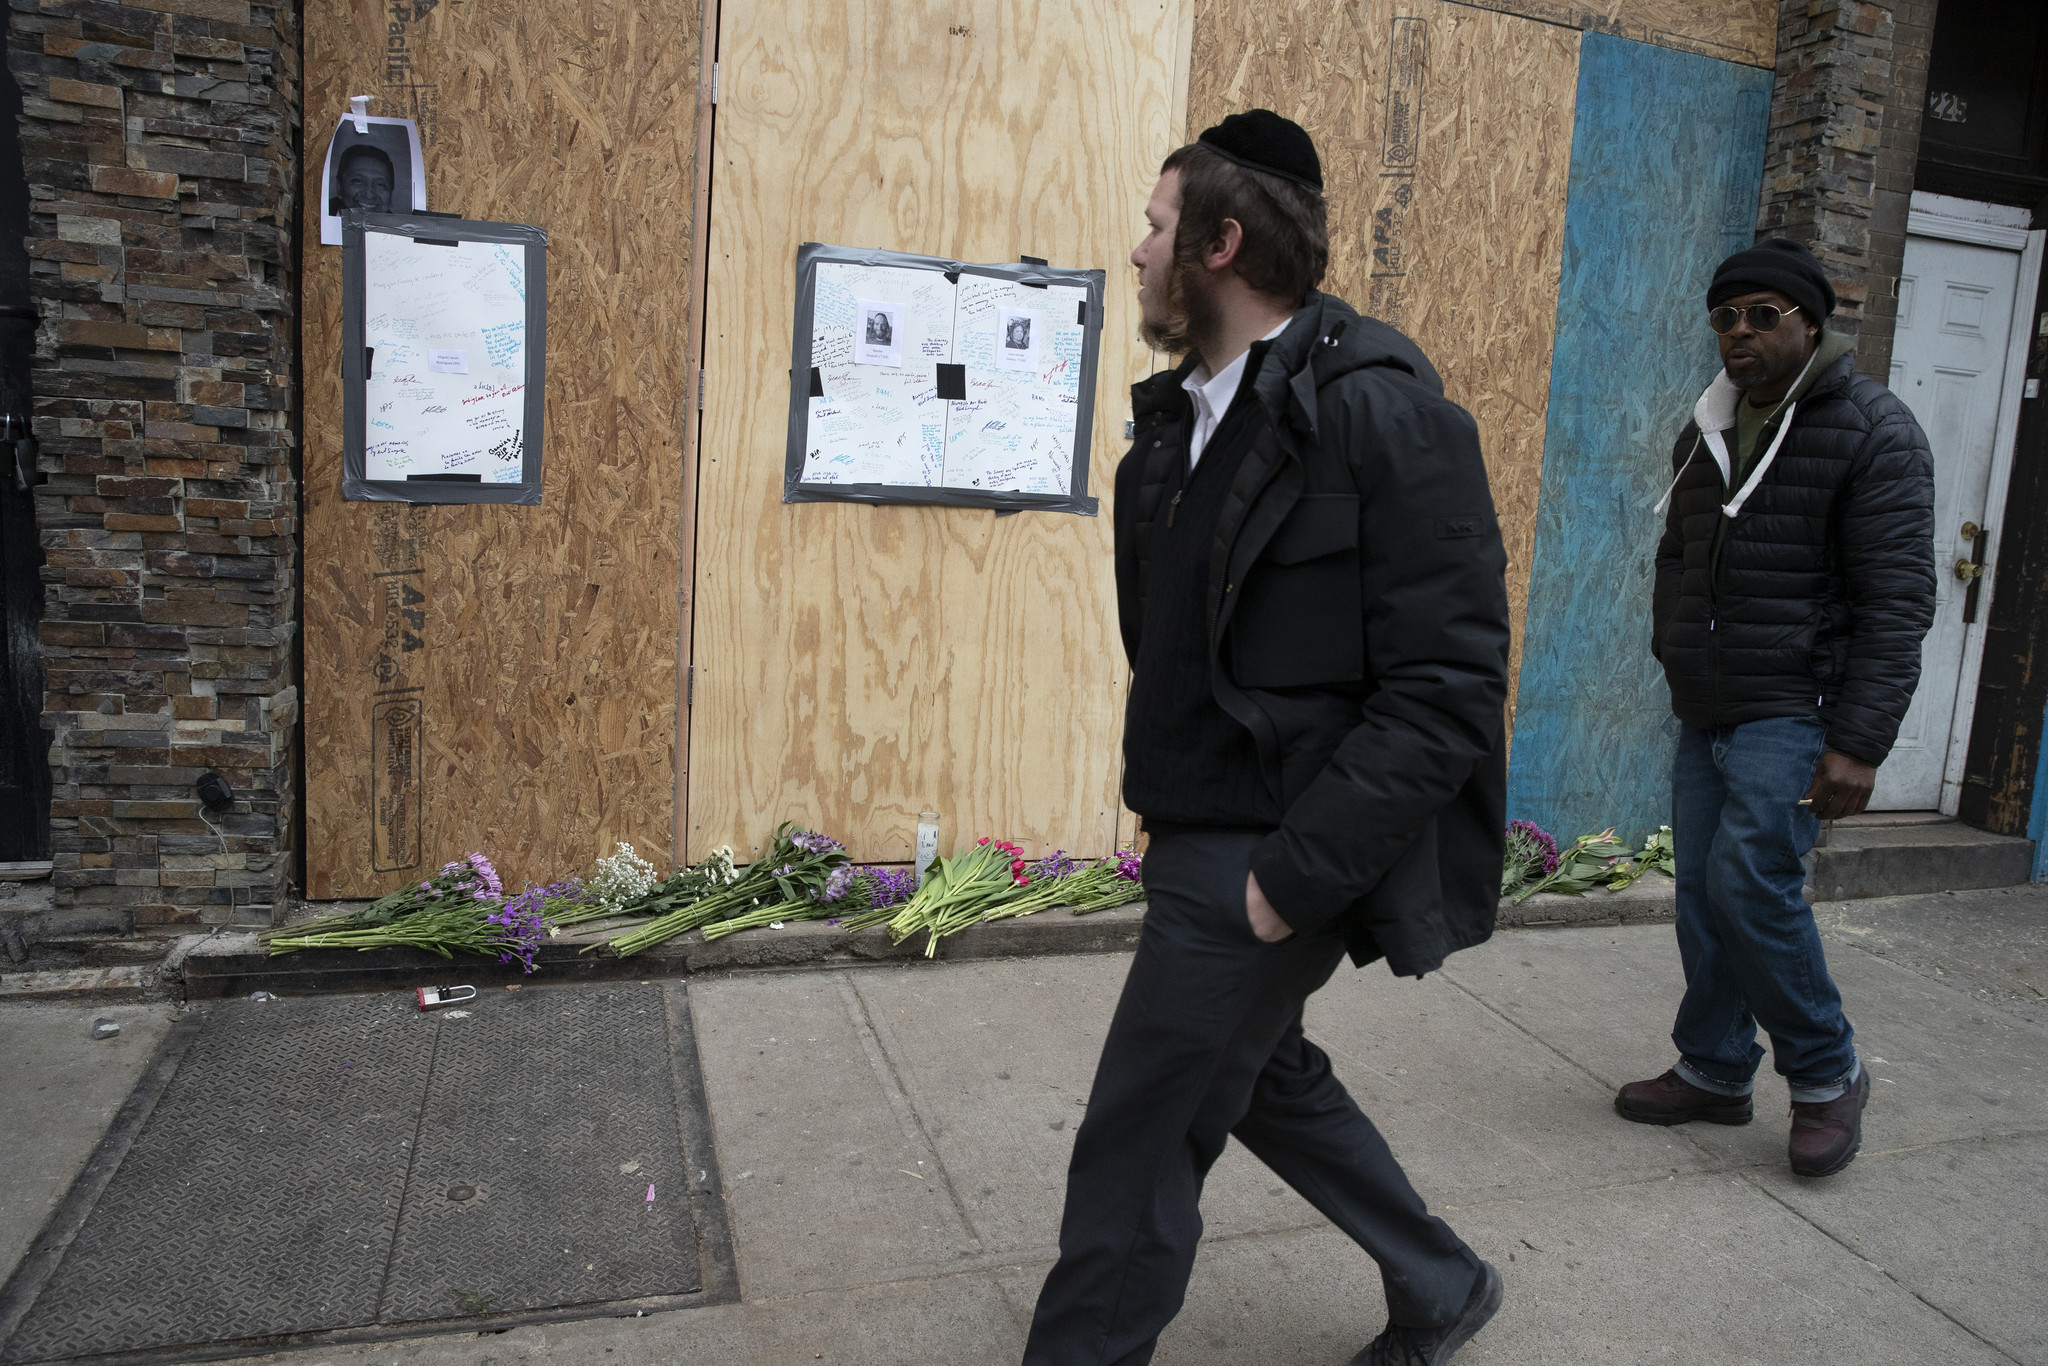 March against hate: New York must stand against anti-Semitism today and all days